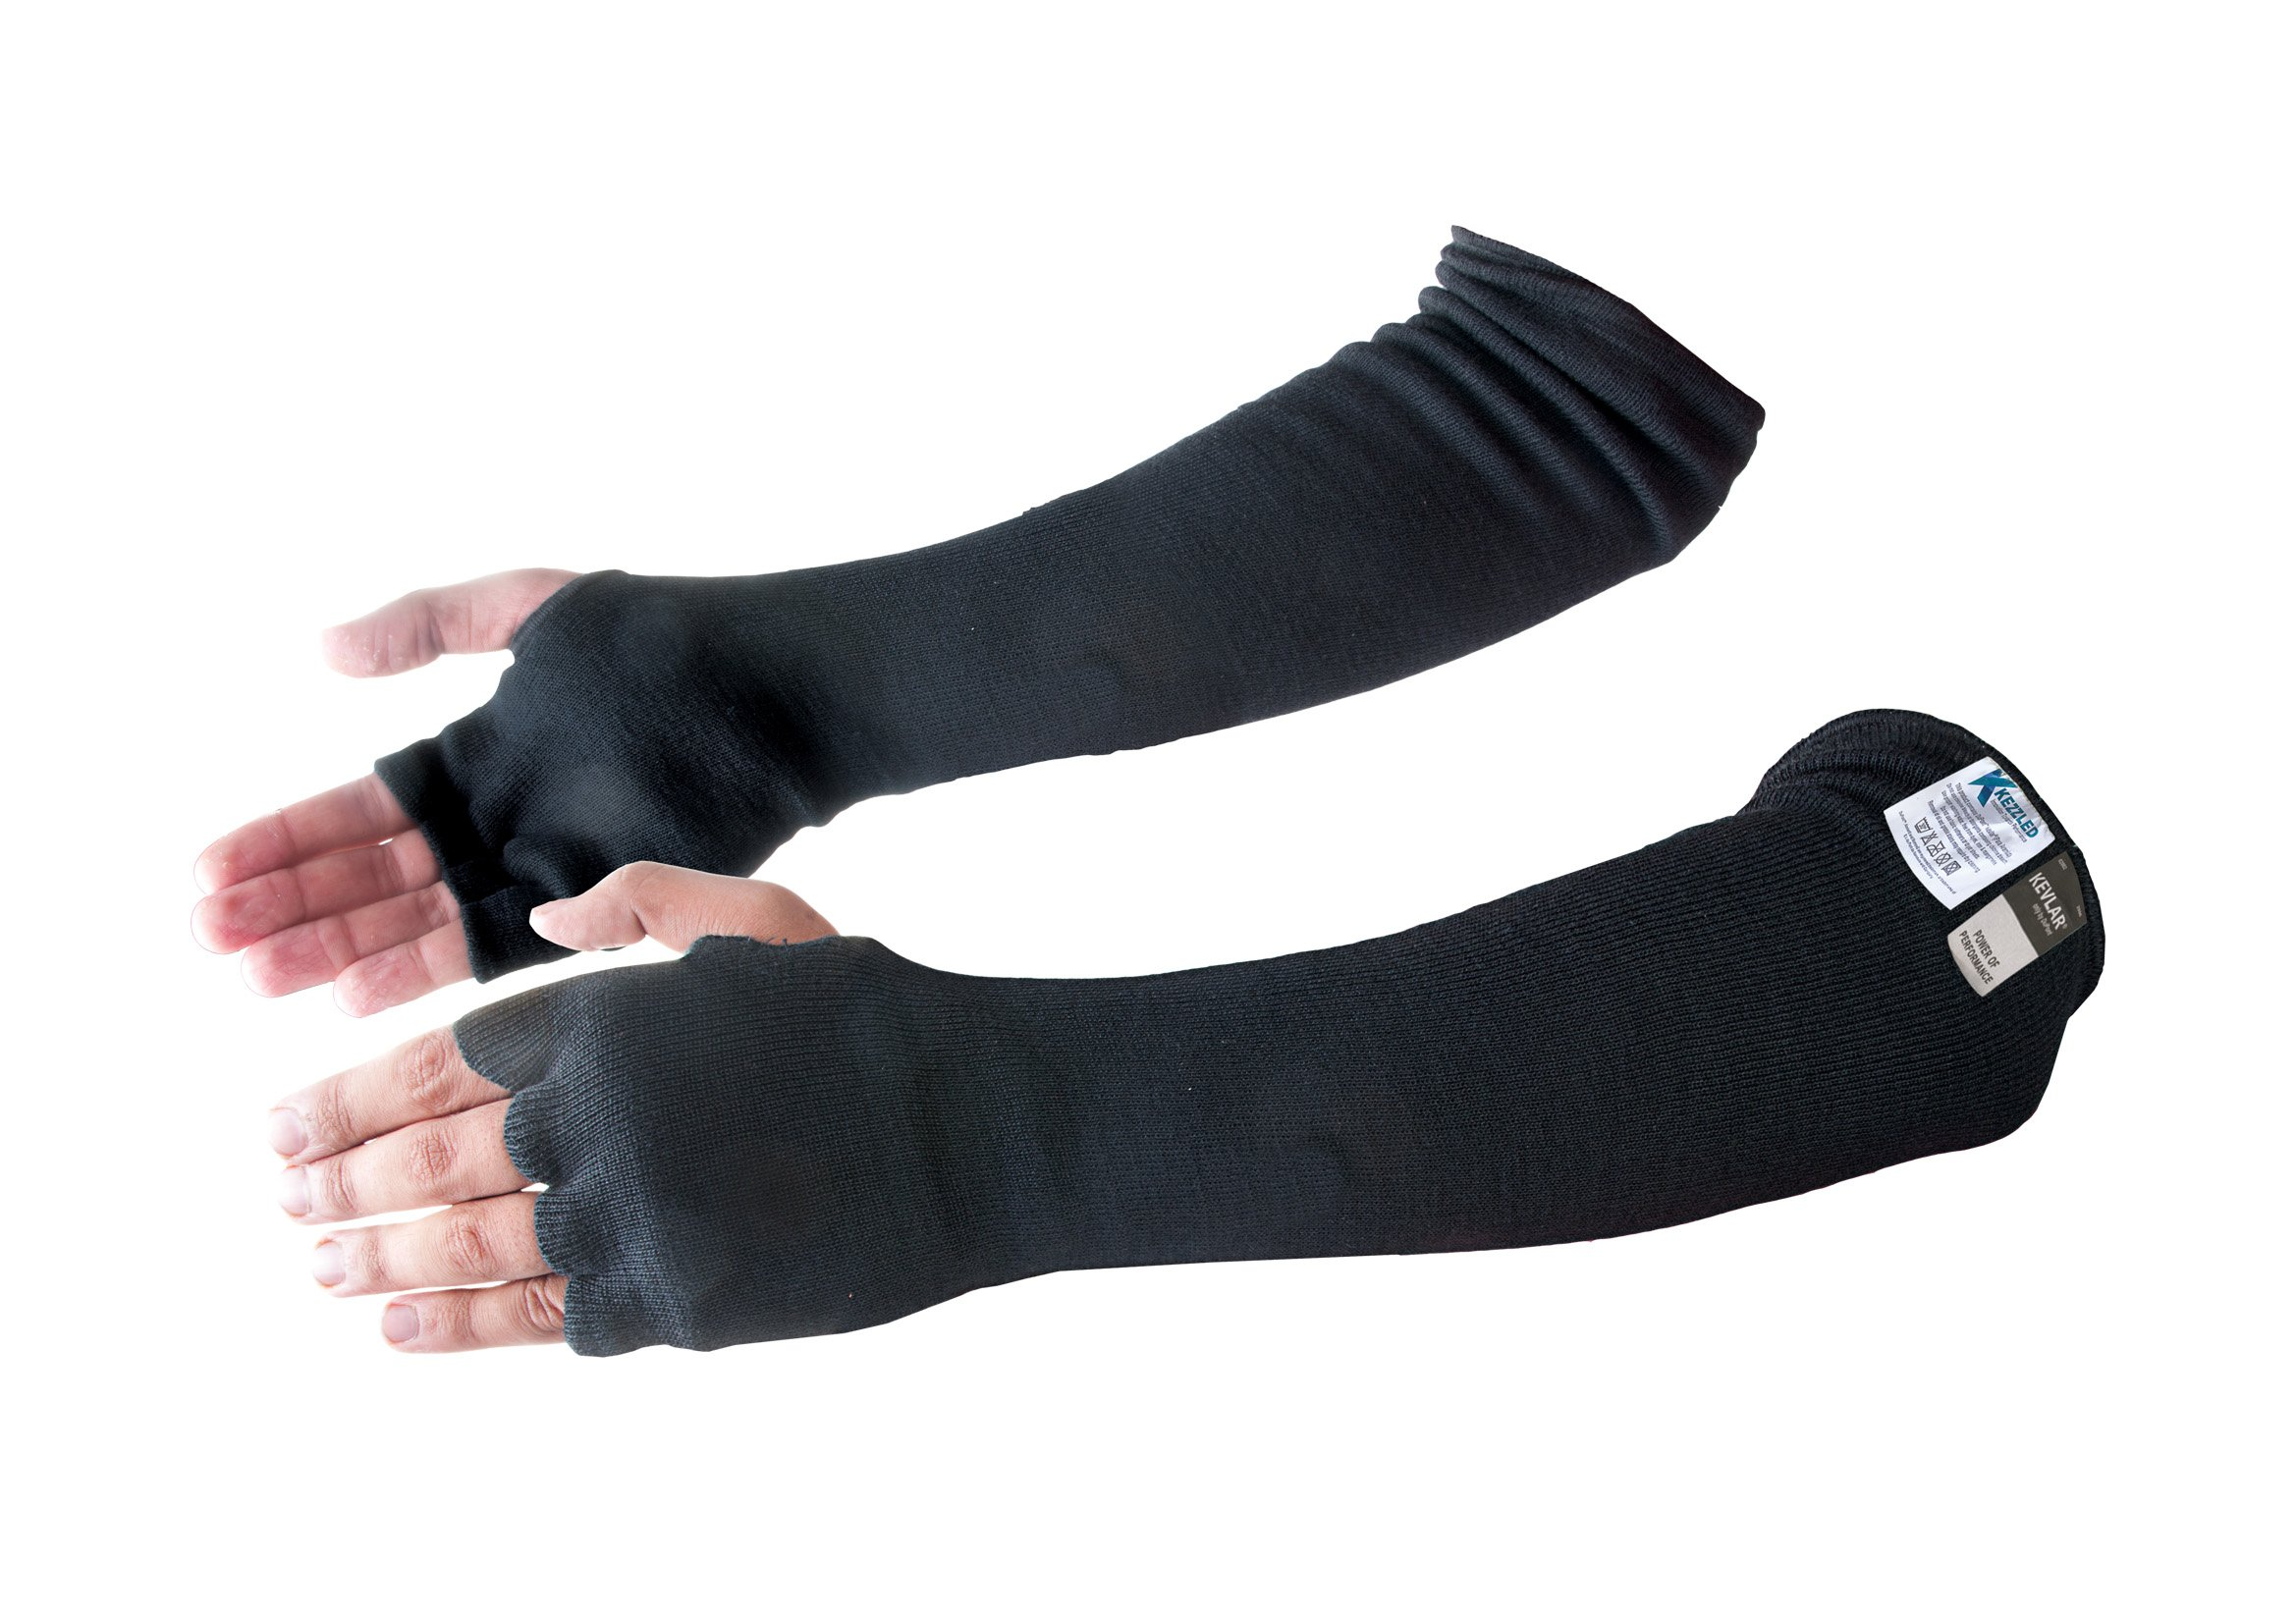 Kevlar Cut & Heat Resistant Designer Arm Sleeves with Finger Openings - Black 18 inches by Kezzled